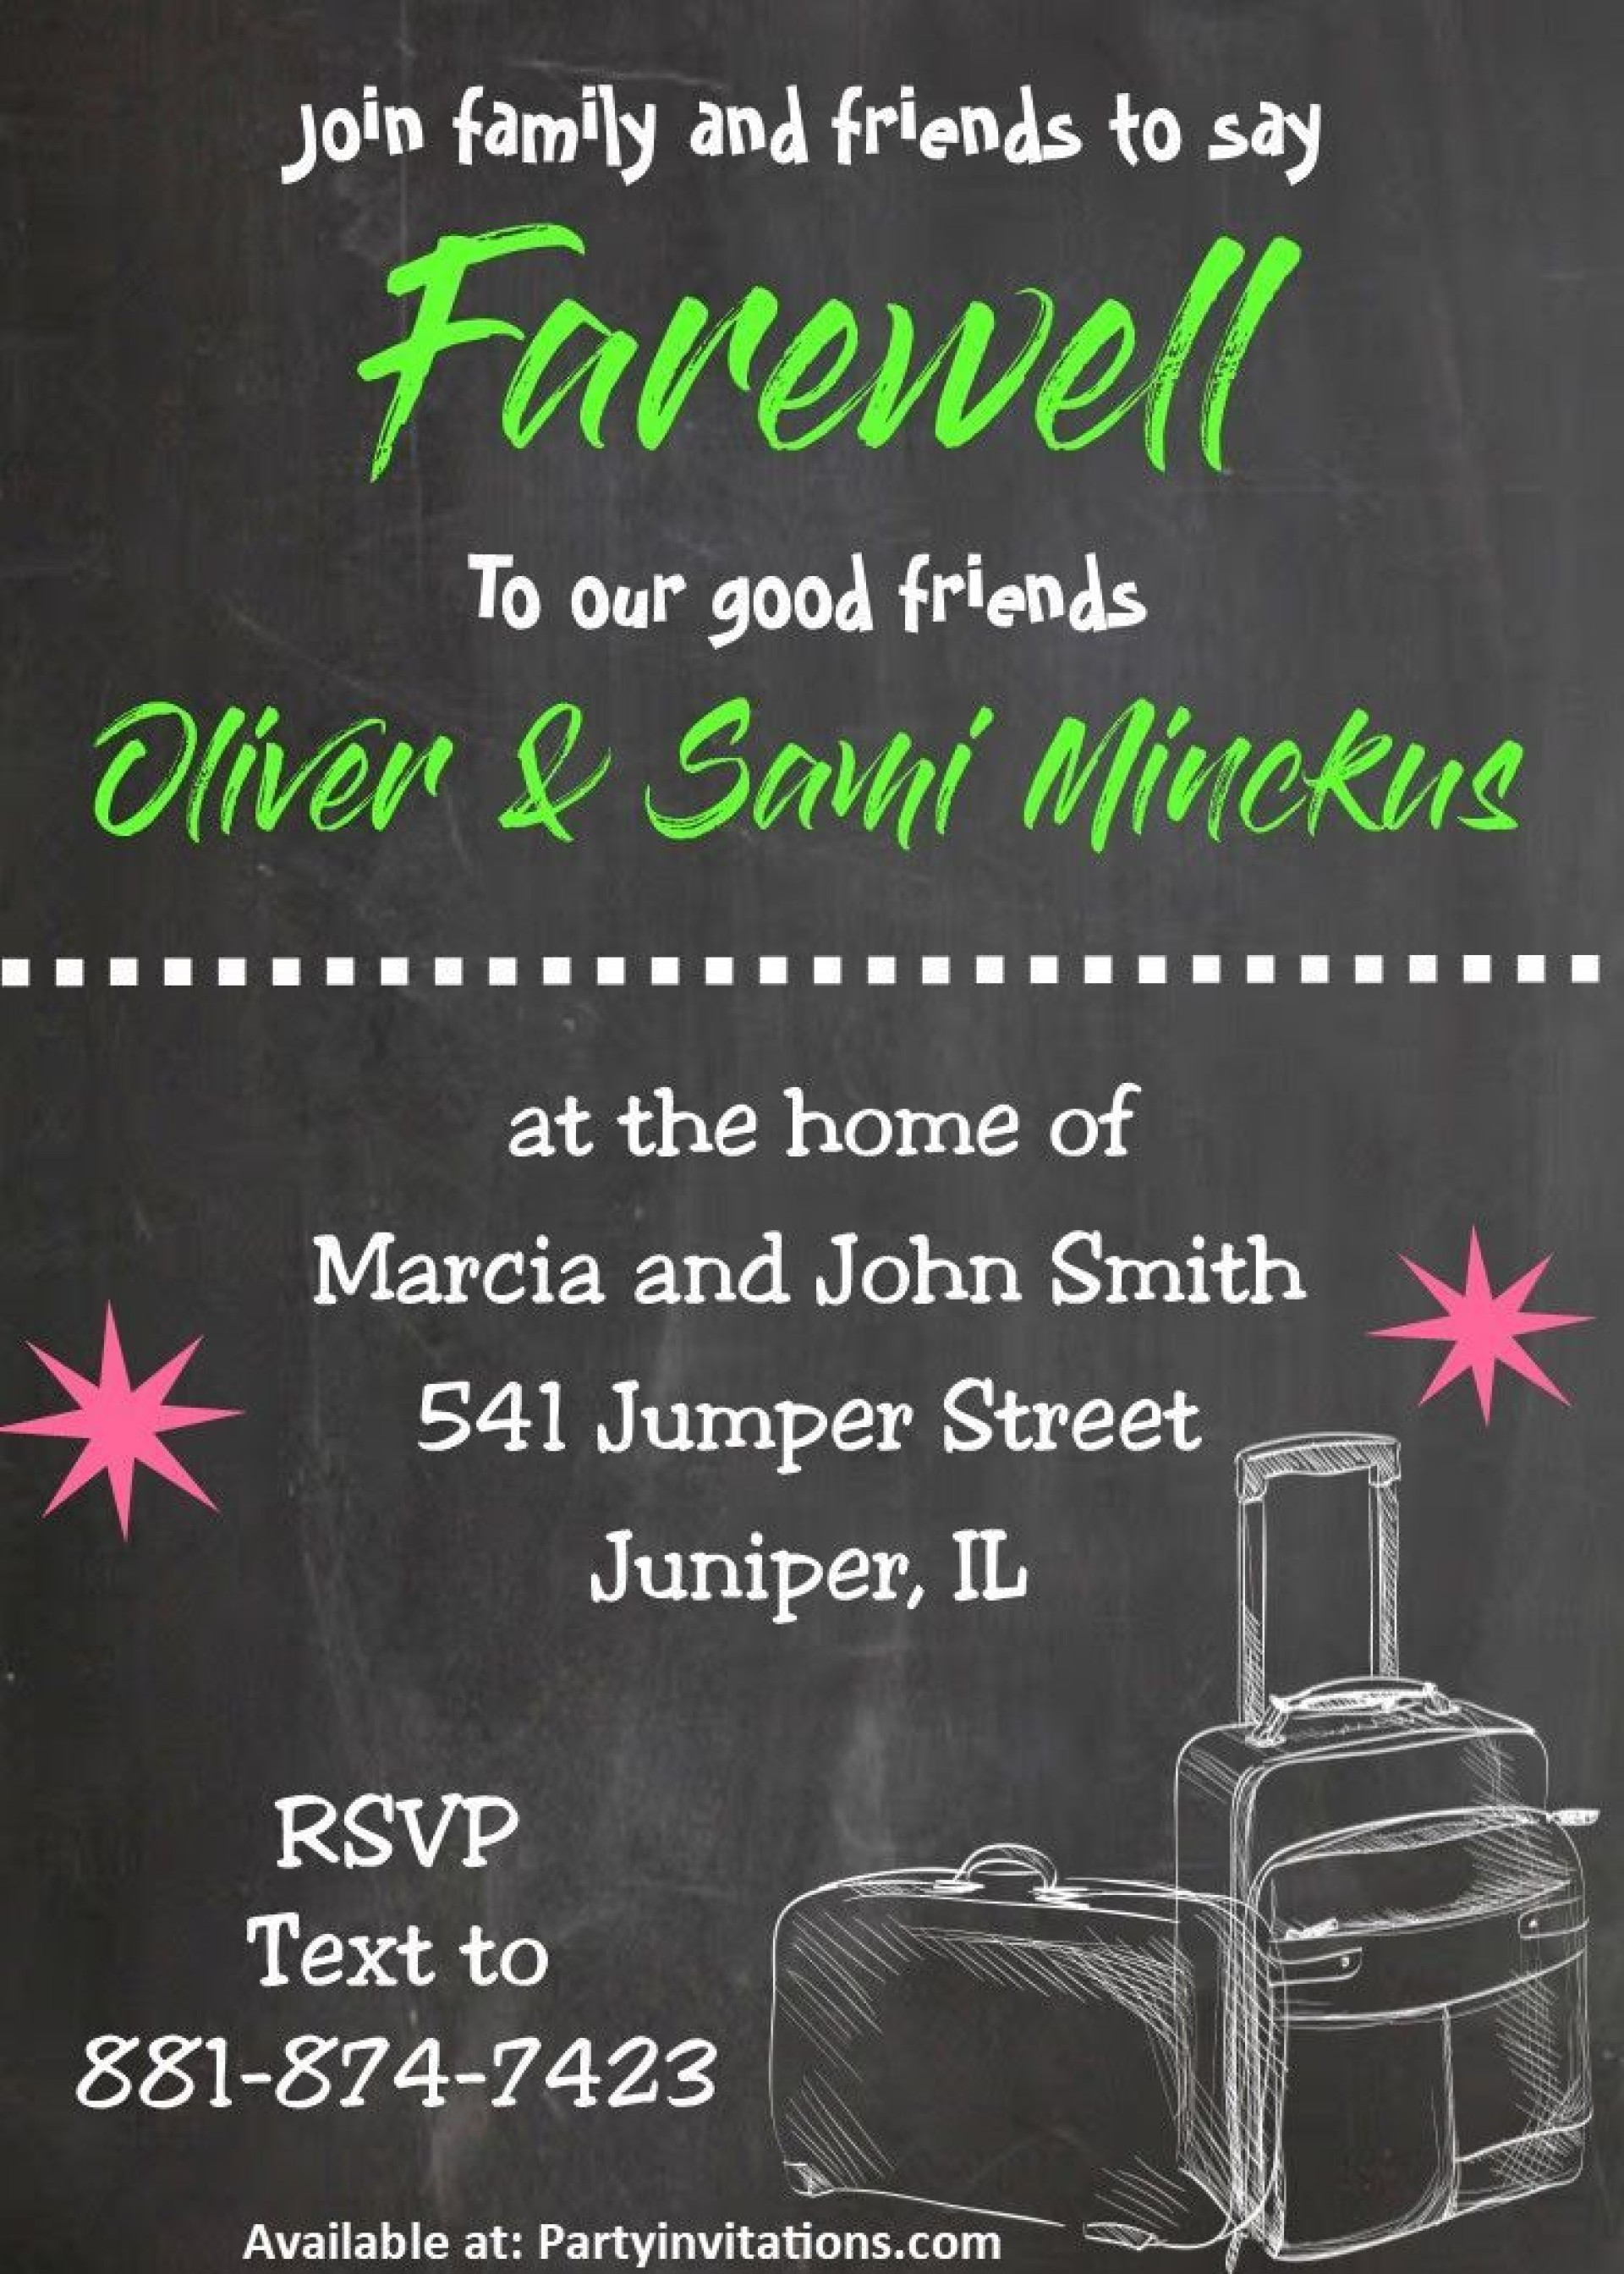 006 Unusual Going Away Party Invitation Template Highest Quality  Free Printable1920